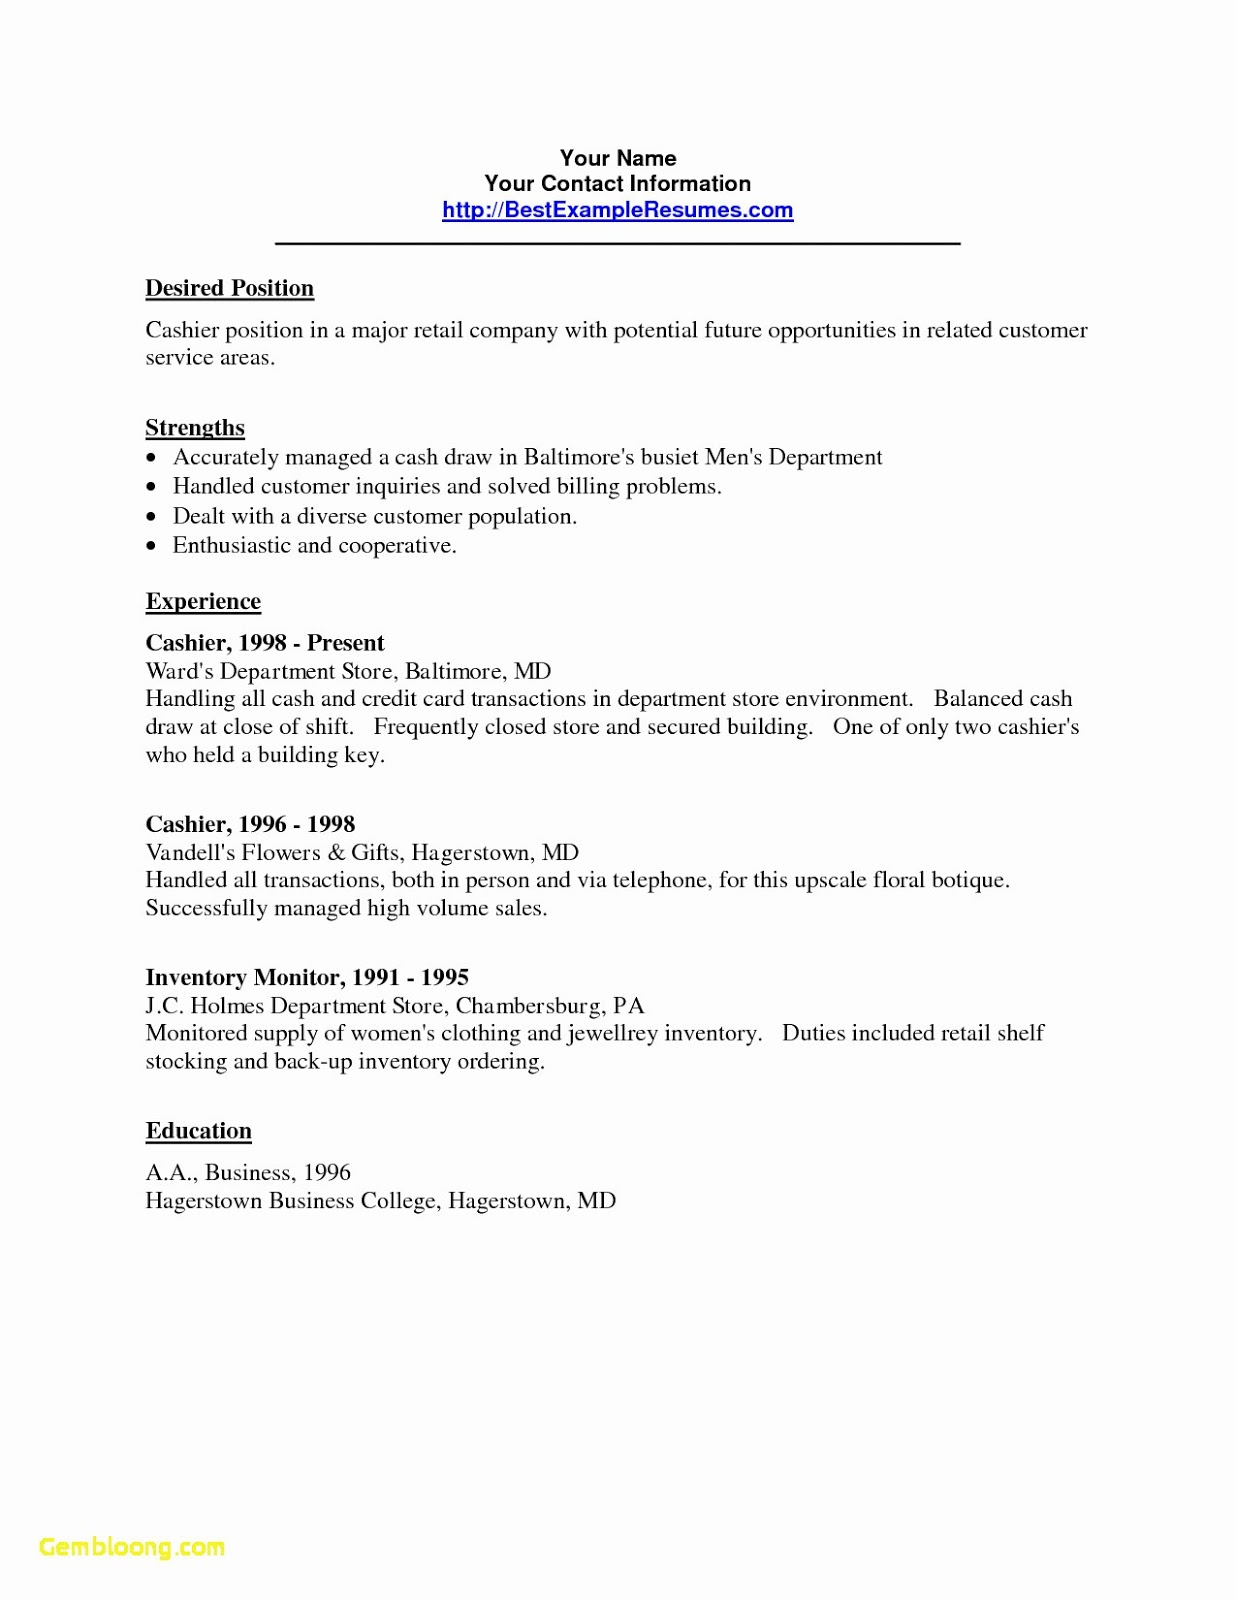 cashier resume sample no experience best examples for with combination word template Resume Resume For Cashier With No Experience